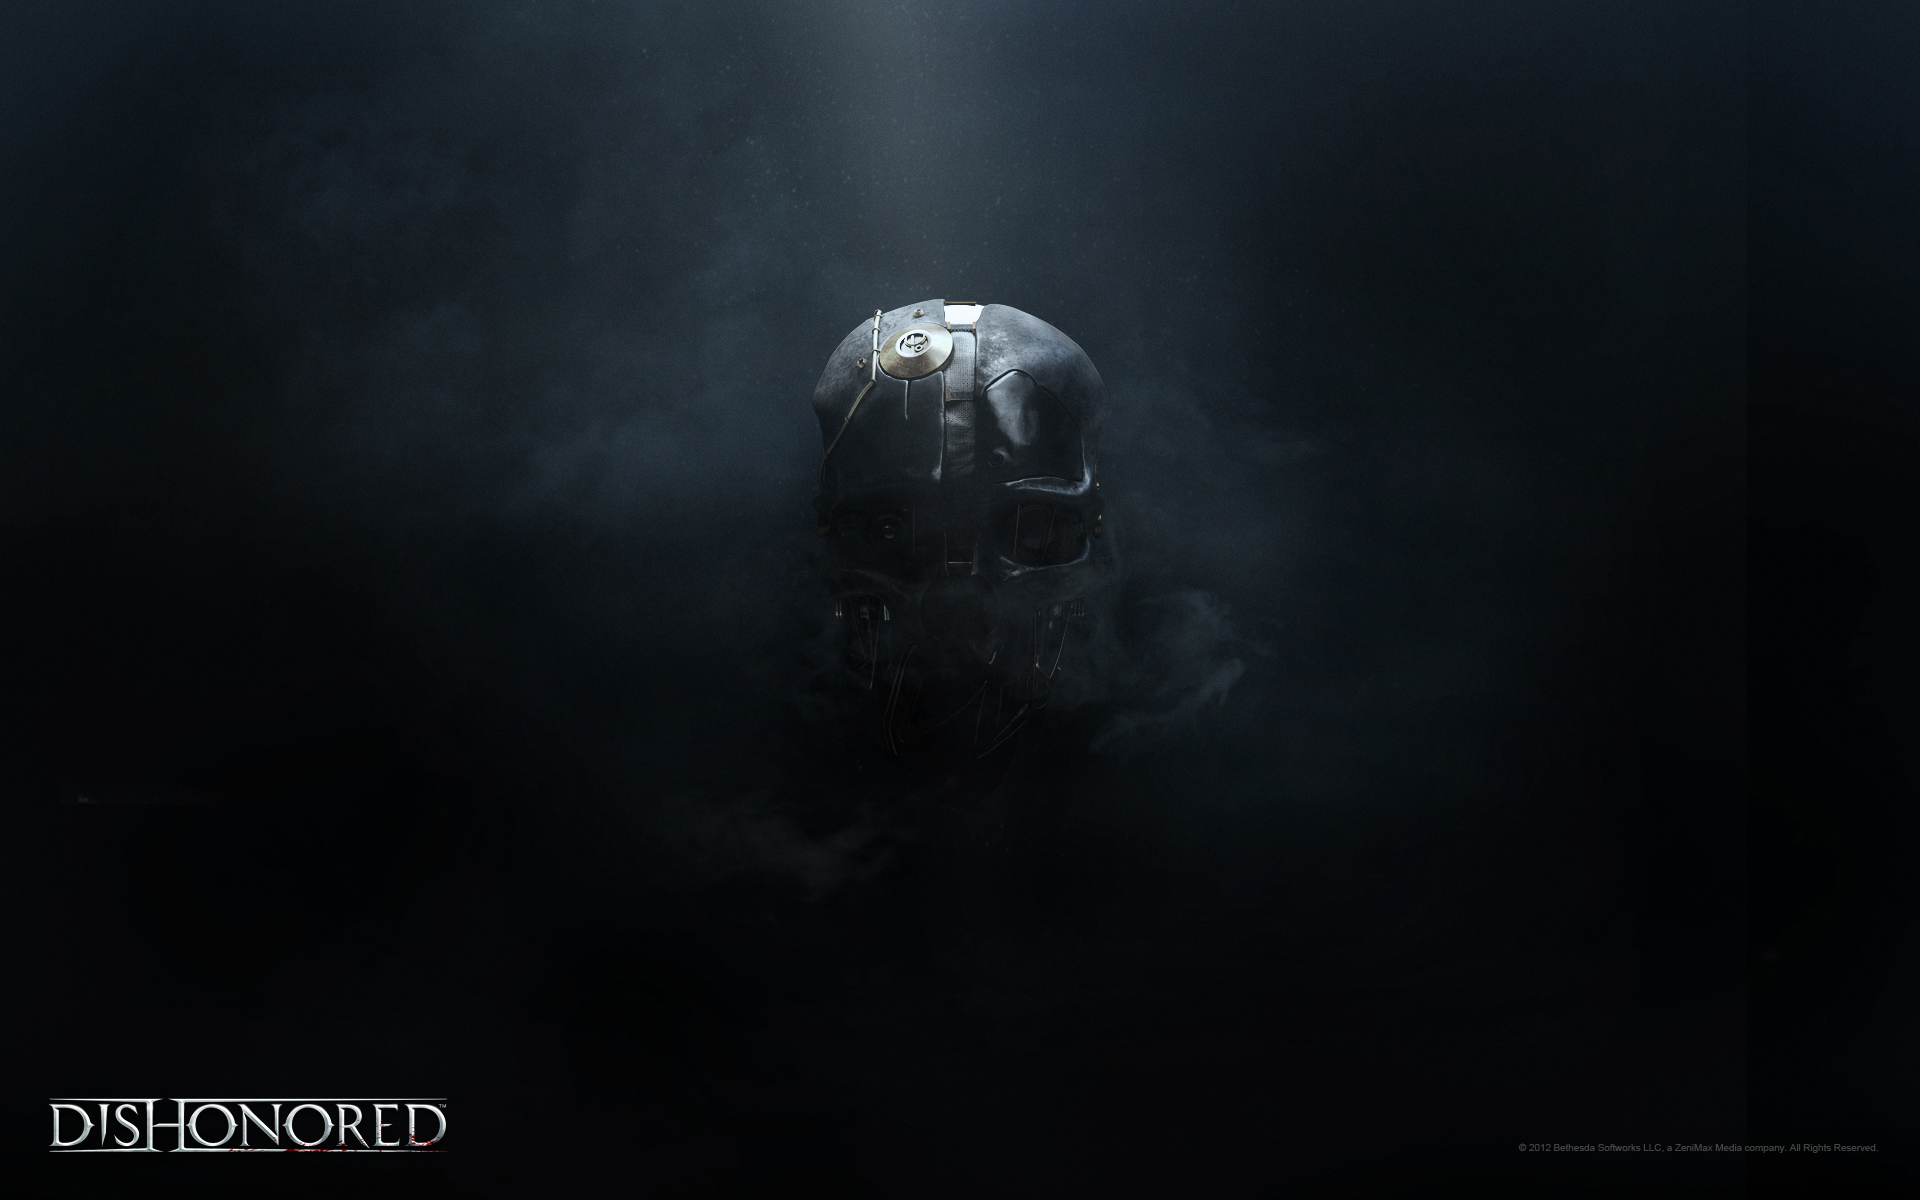 dishonored how to break walls